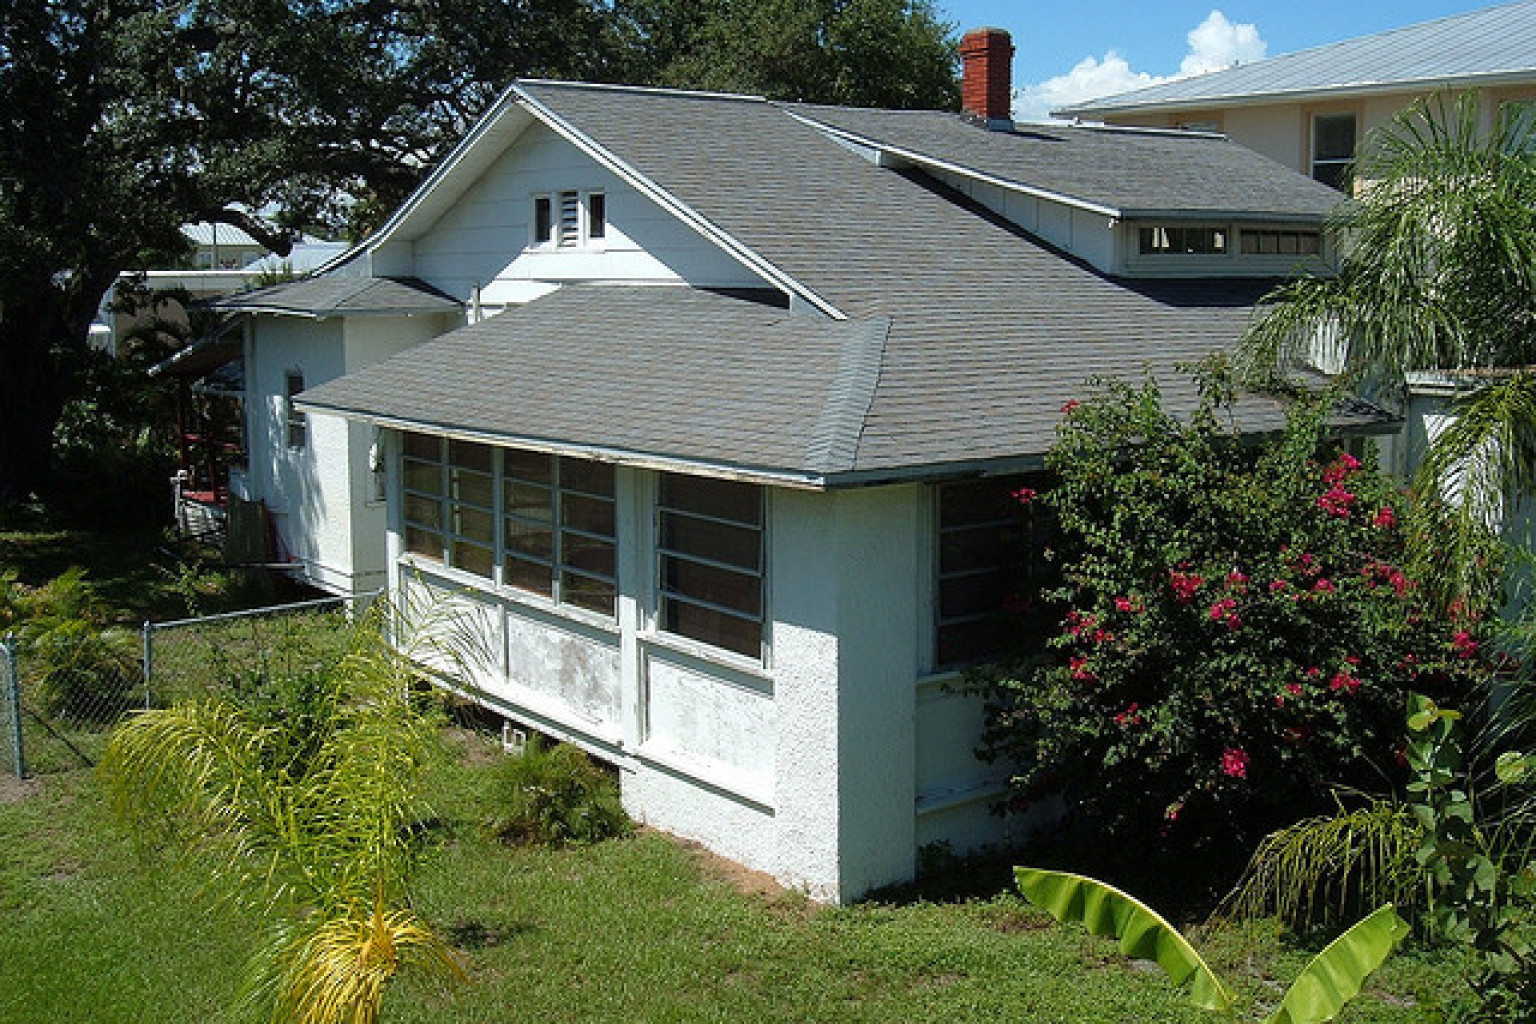 Jim morrison 39 s house in melbourne florida offered a for Jim s dog house